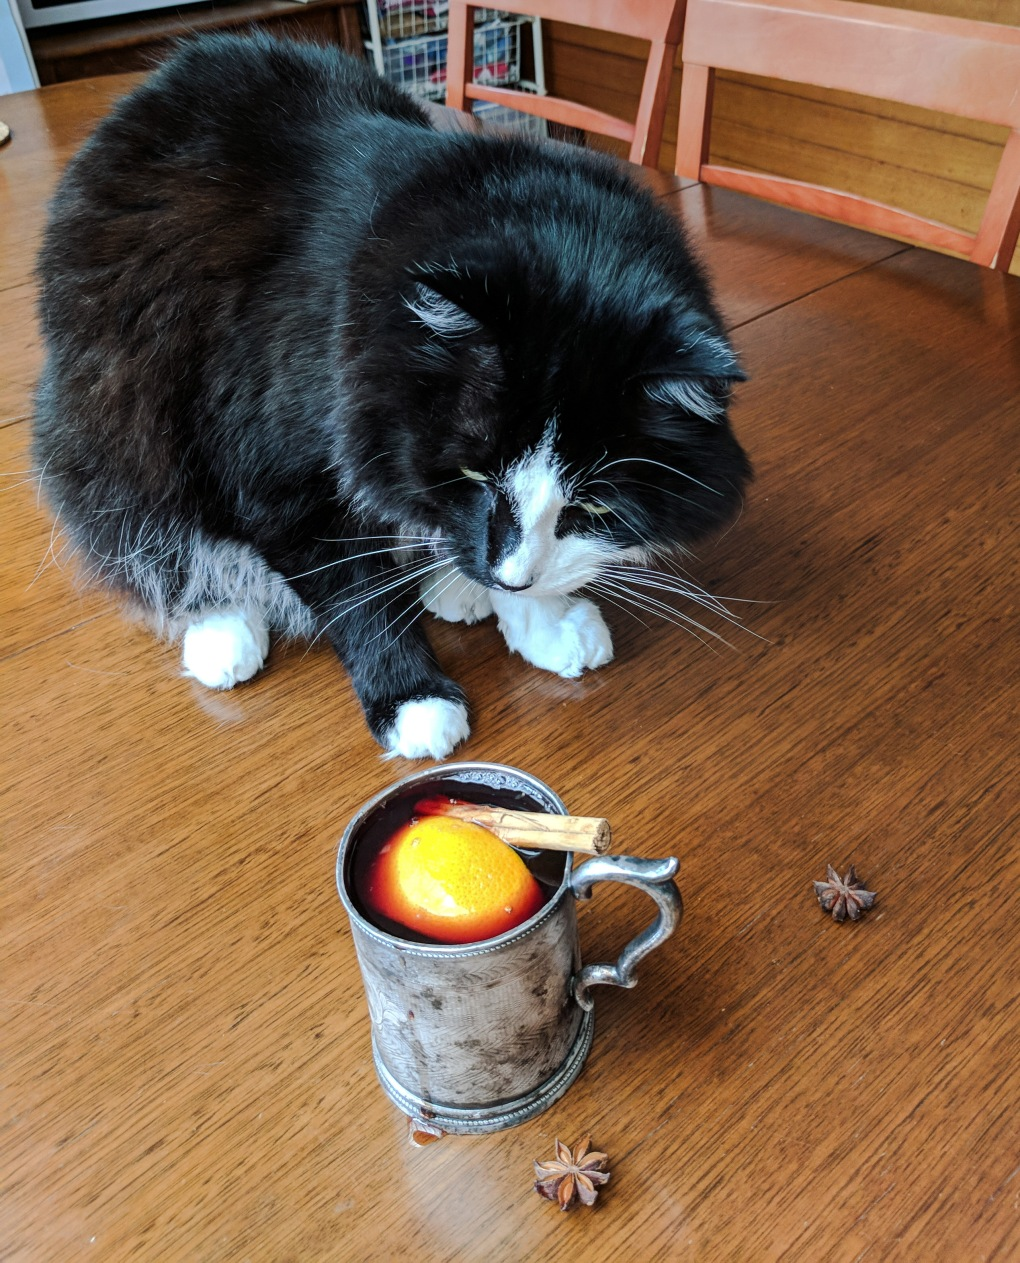 Cat helps with mulled wine